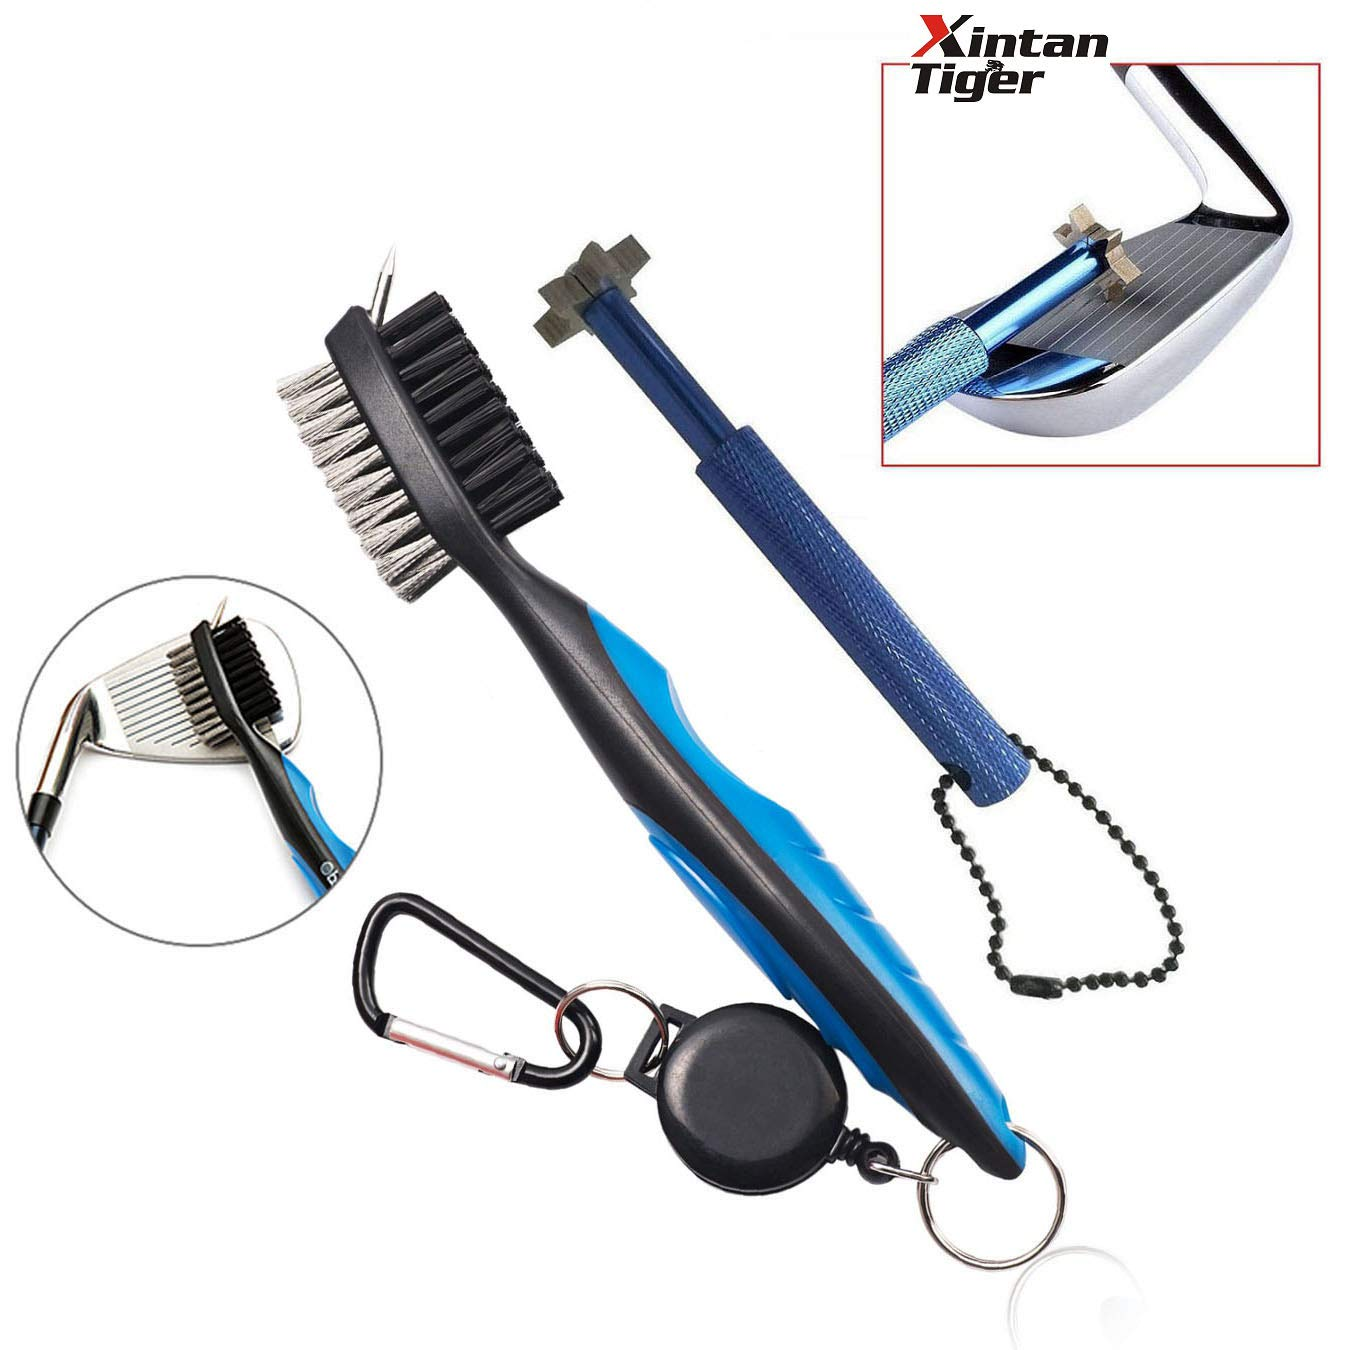 Xintan Tiger Golf Tool Set -Retractable Golf Club Brush and 6 Heads Golf Club Groove Sharpener.Perfect Gift for Golfers-Practical Sharp and Clean Kits For All Golf Irons by Xintan Tiger (Image #1)